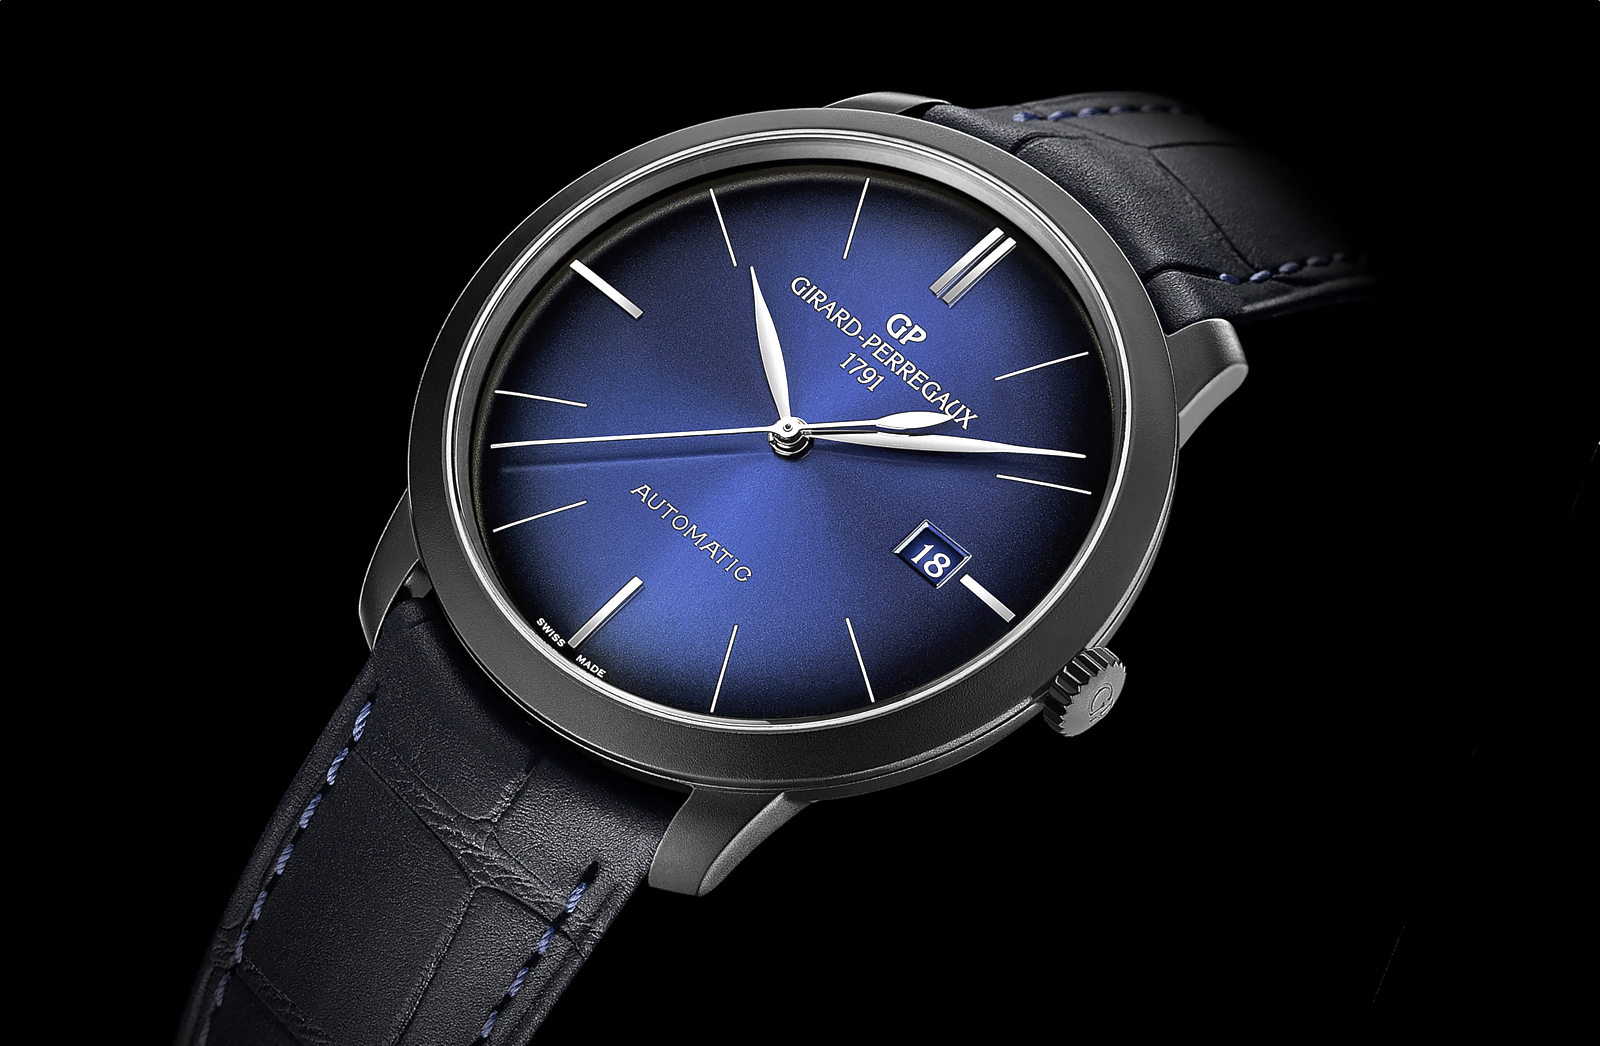 Girard-Perregaux SIHH 2019 1966 Earth to Sky Edition